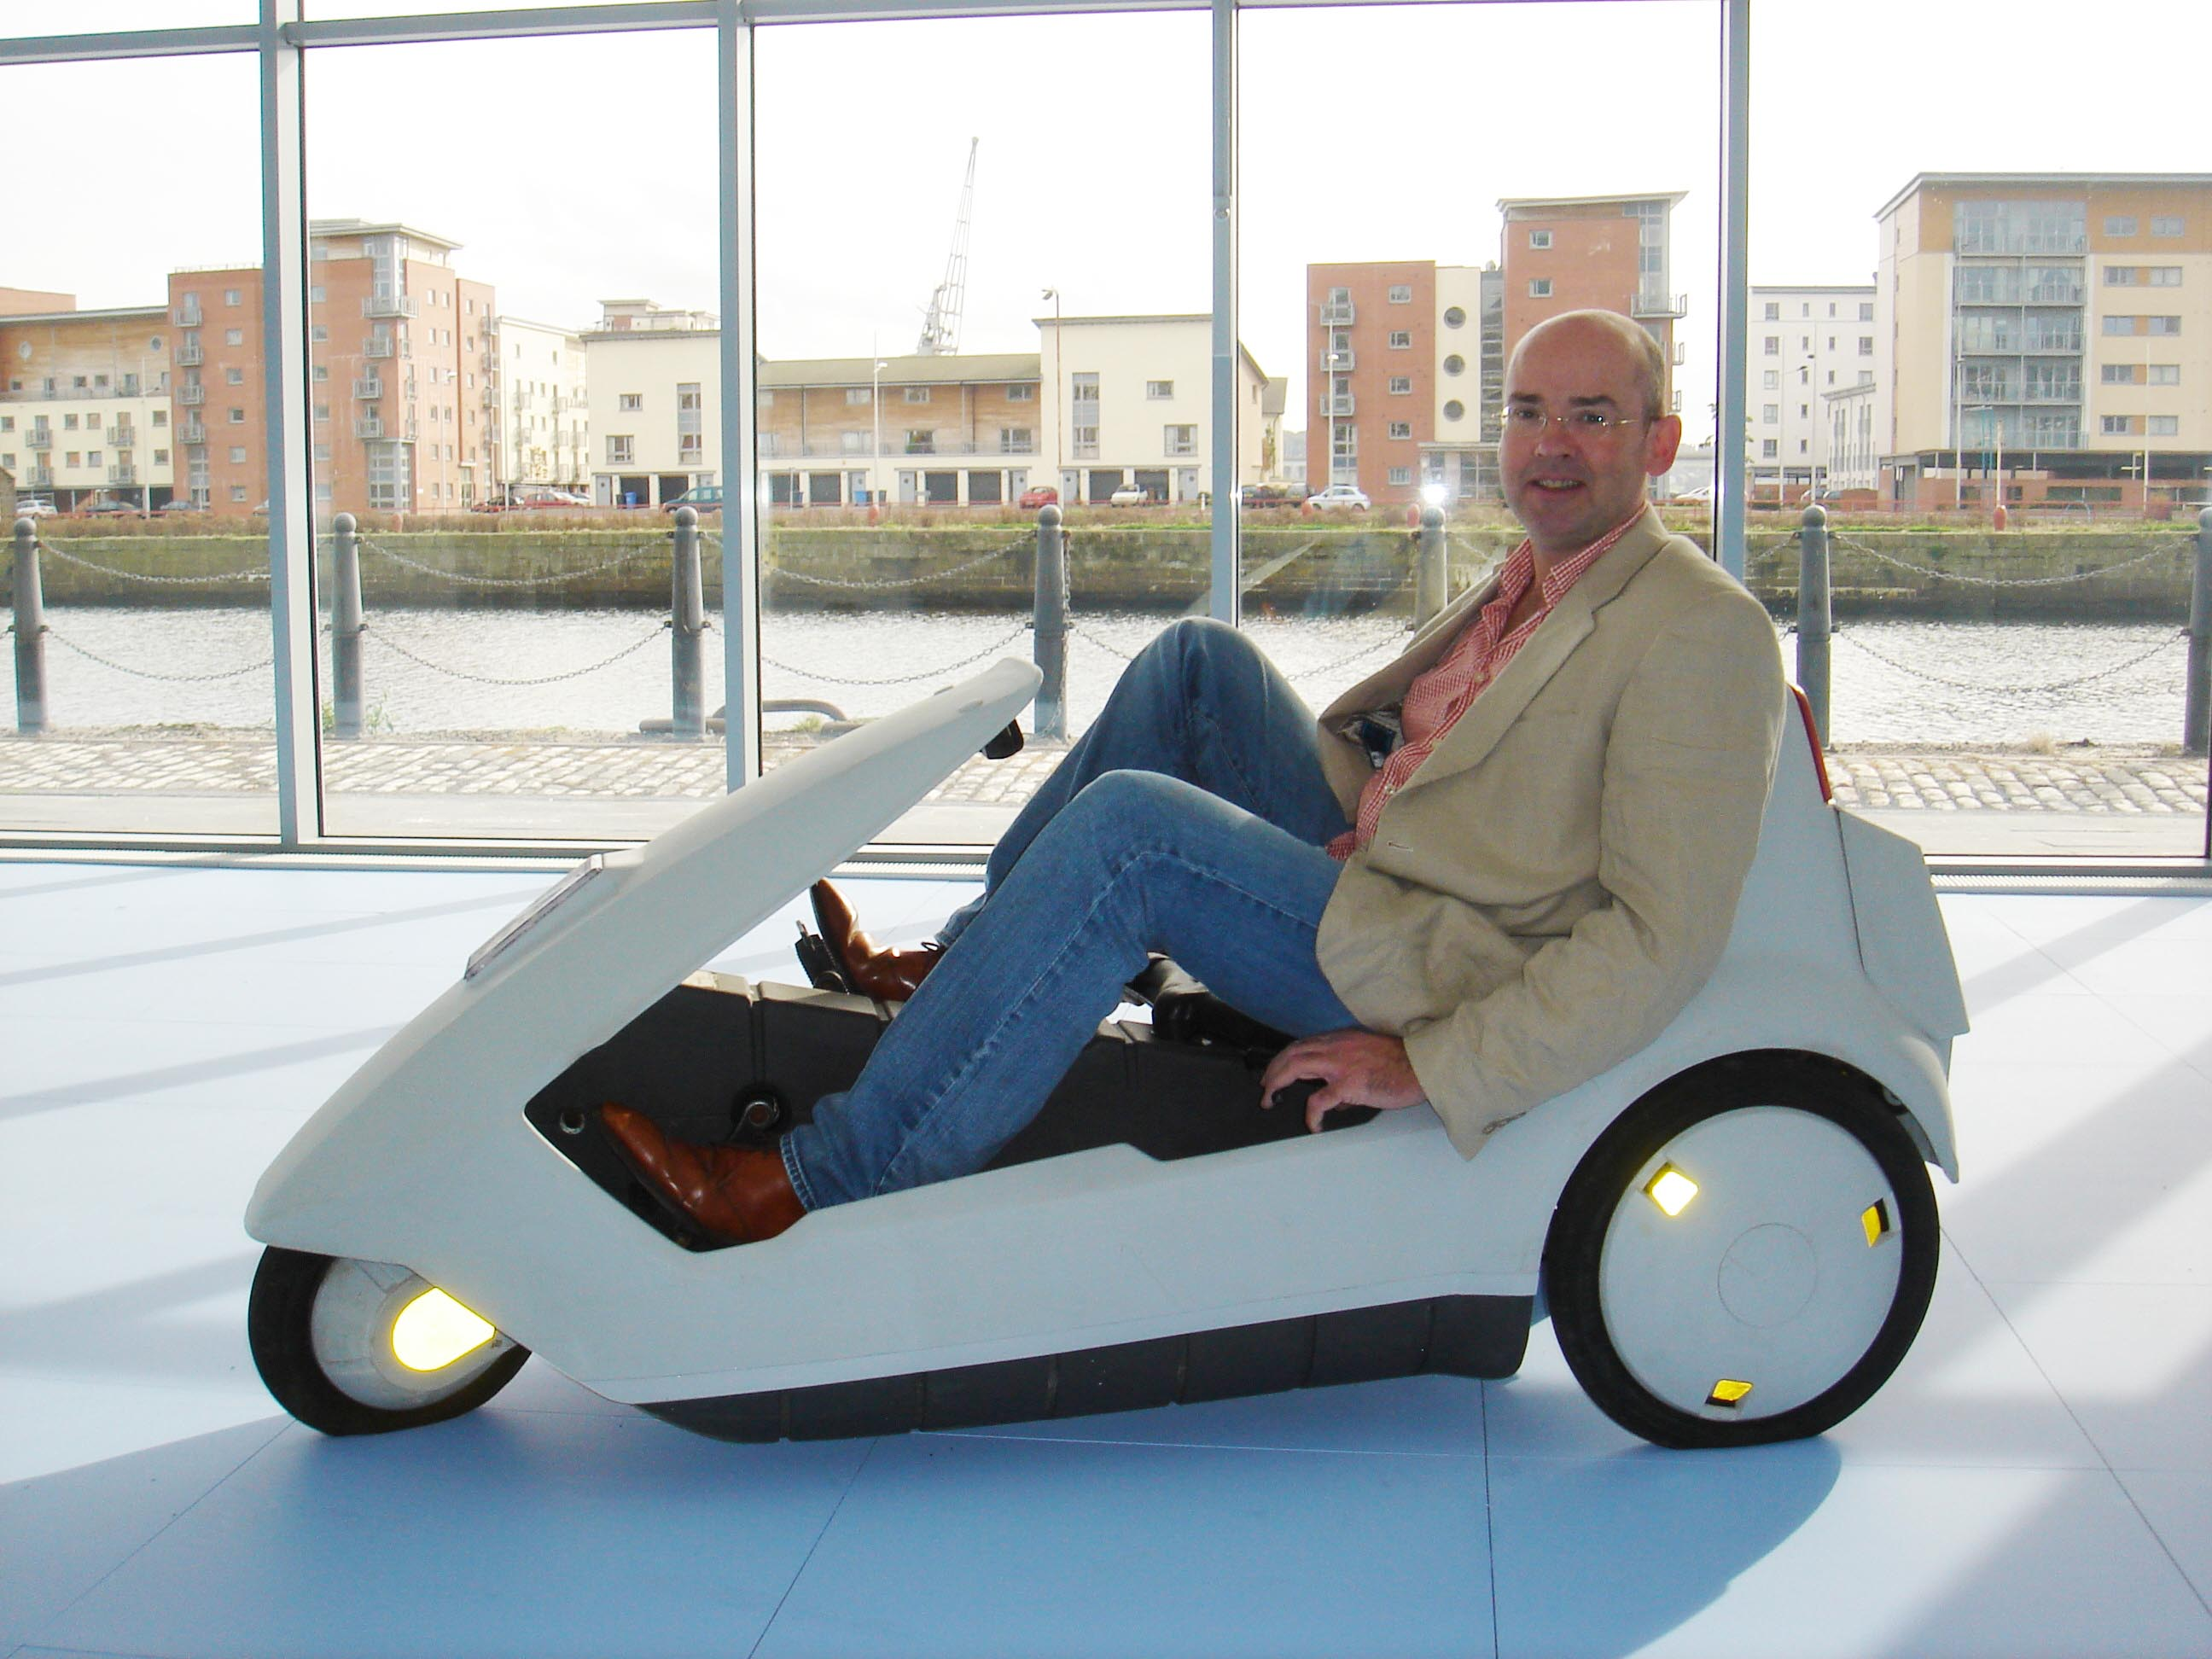 Crispin Sinclair, the son of inventor Sir Clive Sinclair, was in Dundee offering a Sinclair C5 electric vehicle to prospective tenants of a refurbished office at Dundee's City Quay. A collector's item, the C5 was to be handed over with the keys to one of the new units.